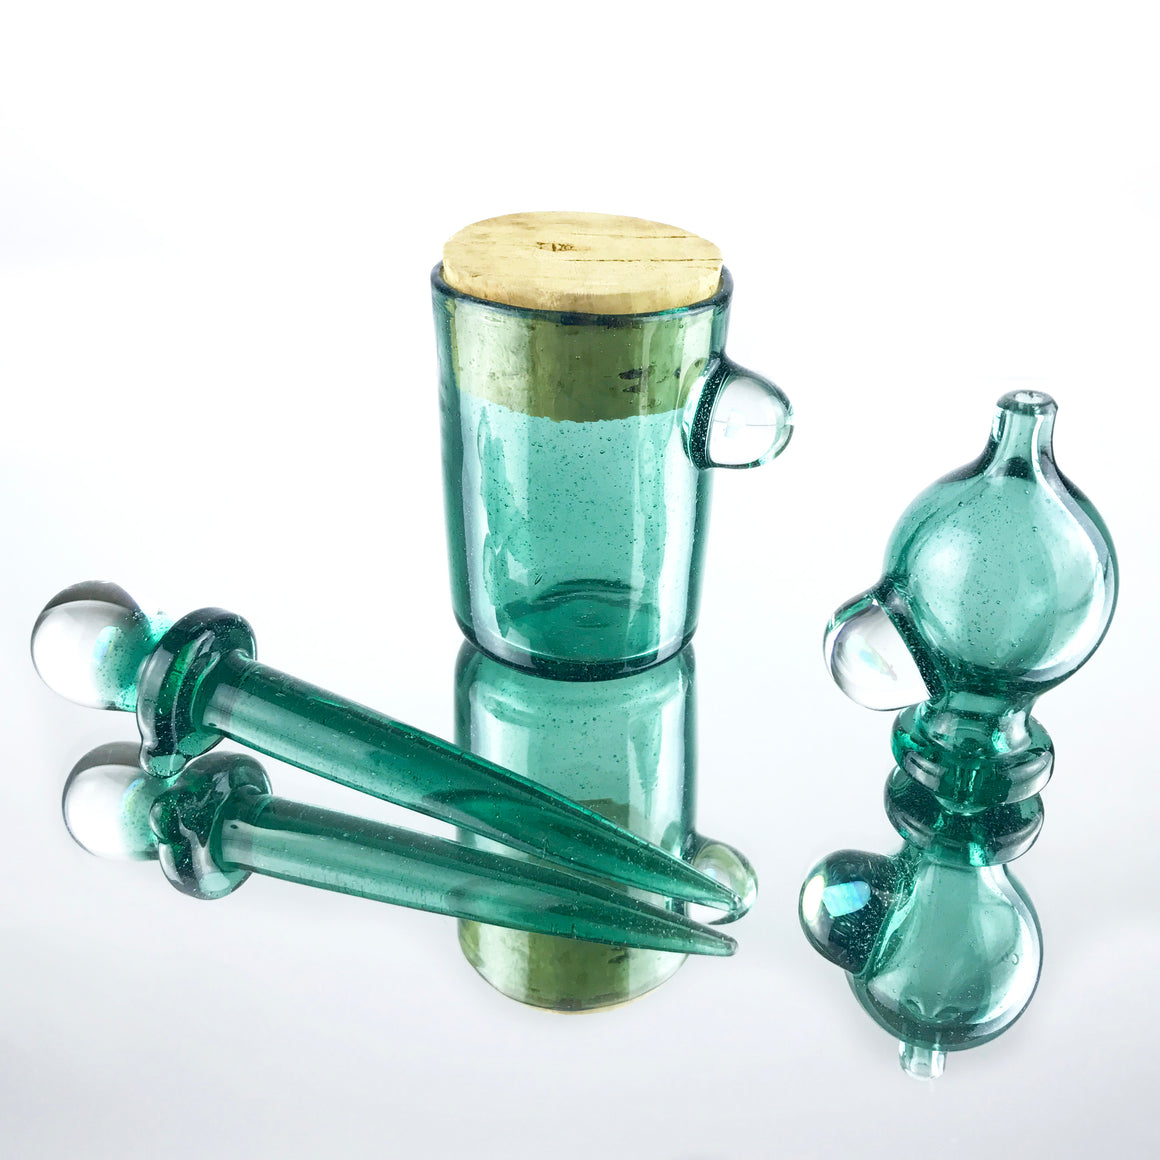 Fully-worked Klein Recycler Set - Custom Aqua Green - 10mm Female